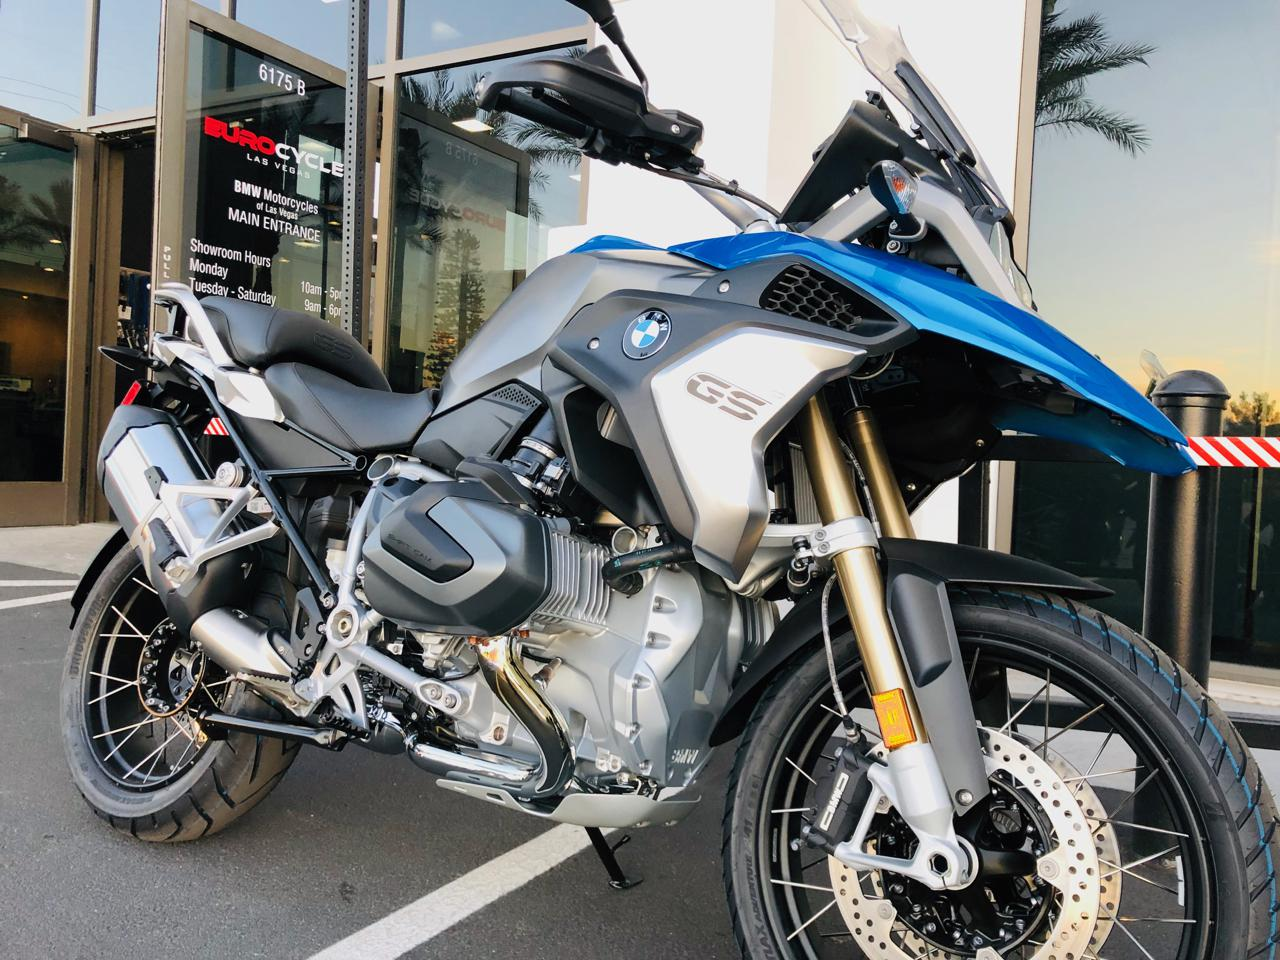 Wondrous 2019 Bmw R1250Gs Premium For Sale In Las Vegas Nv Freedom Ocoug Best Dining Table And Chair Ideas Images Ocougorg